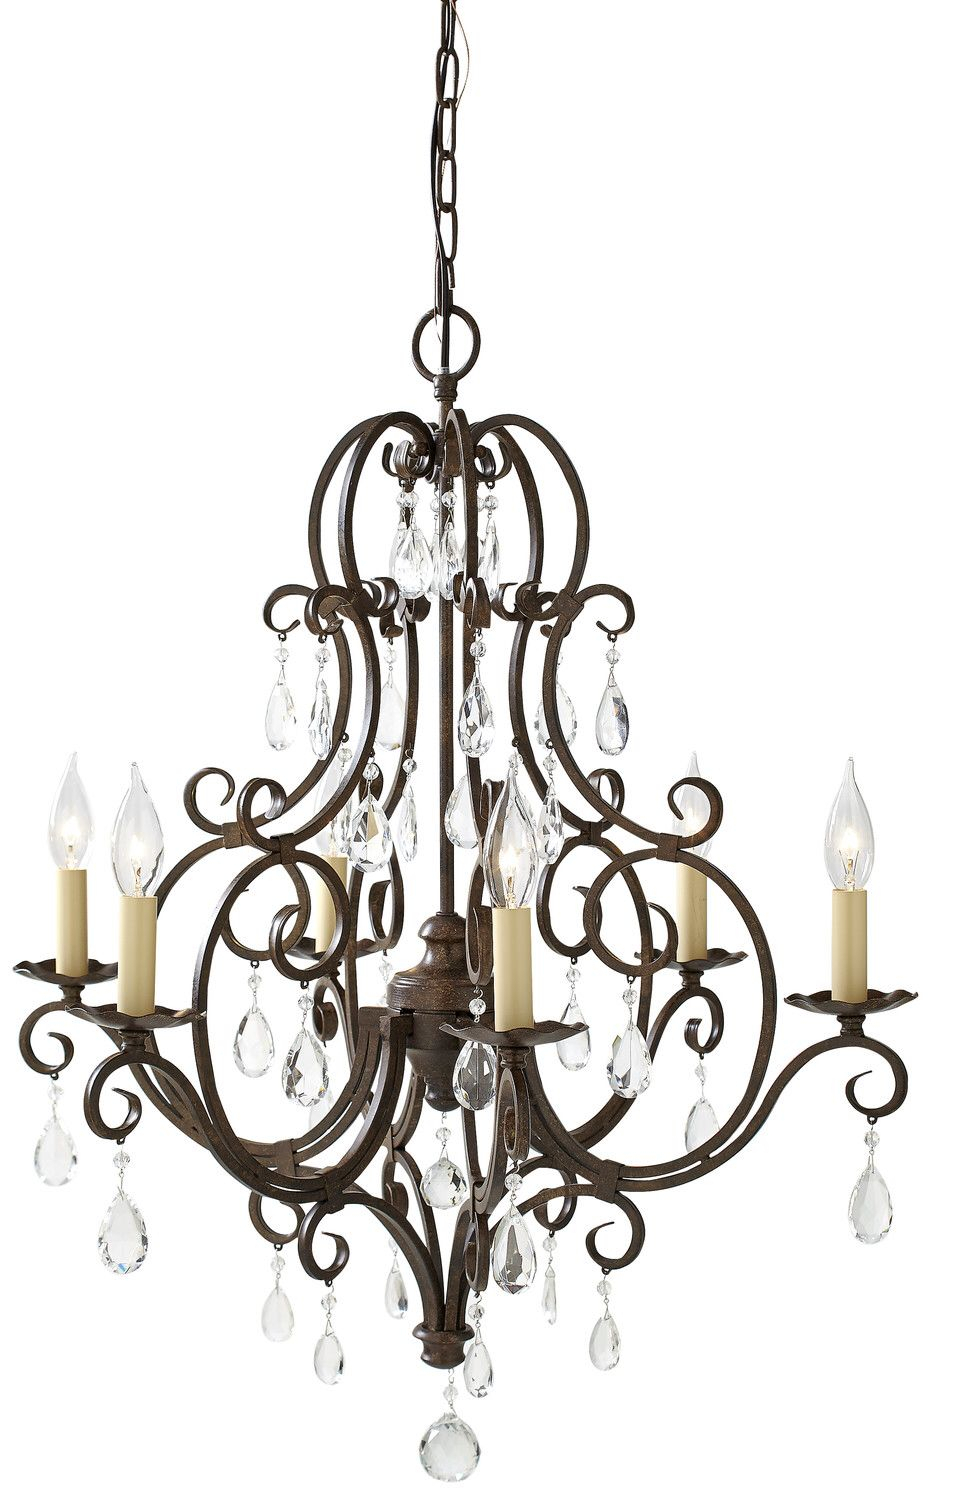 Esse 6-Light Candle Style Chandelier In 2019 | Lighting regarding Camilla 9-Light Candle Style Chandeliers (Image 13 of 30)